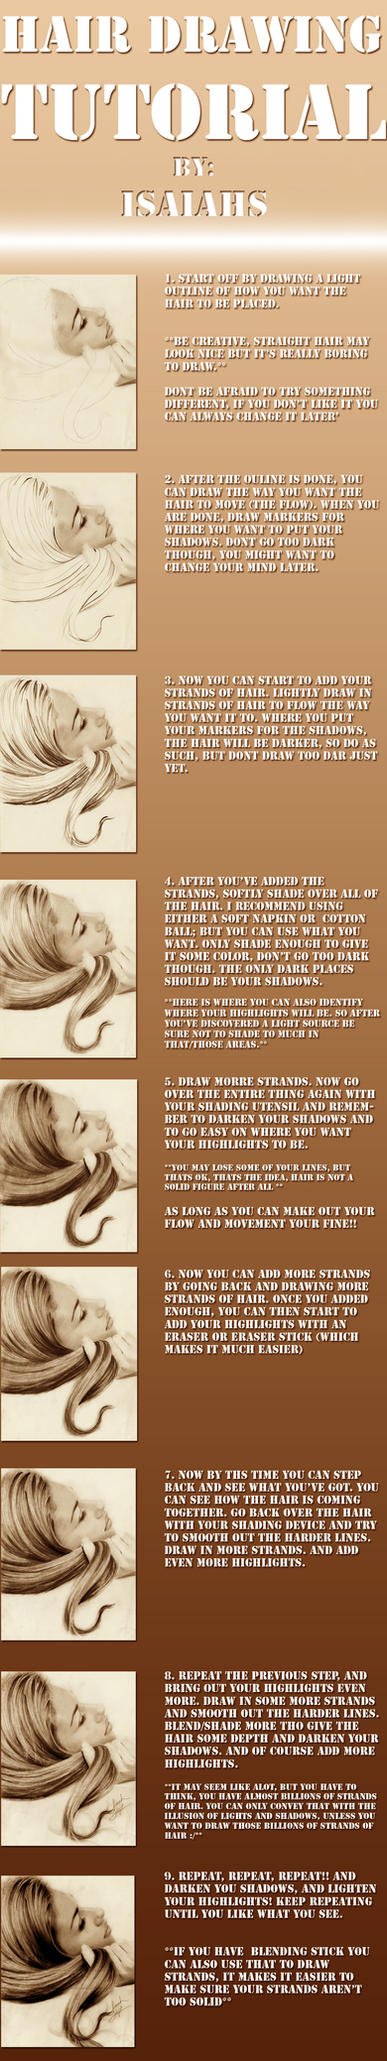 .Hair Drawing tutorial by IsaiahStephens